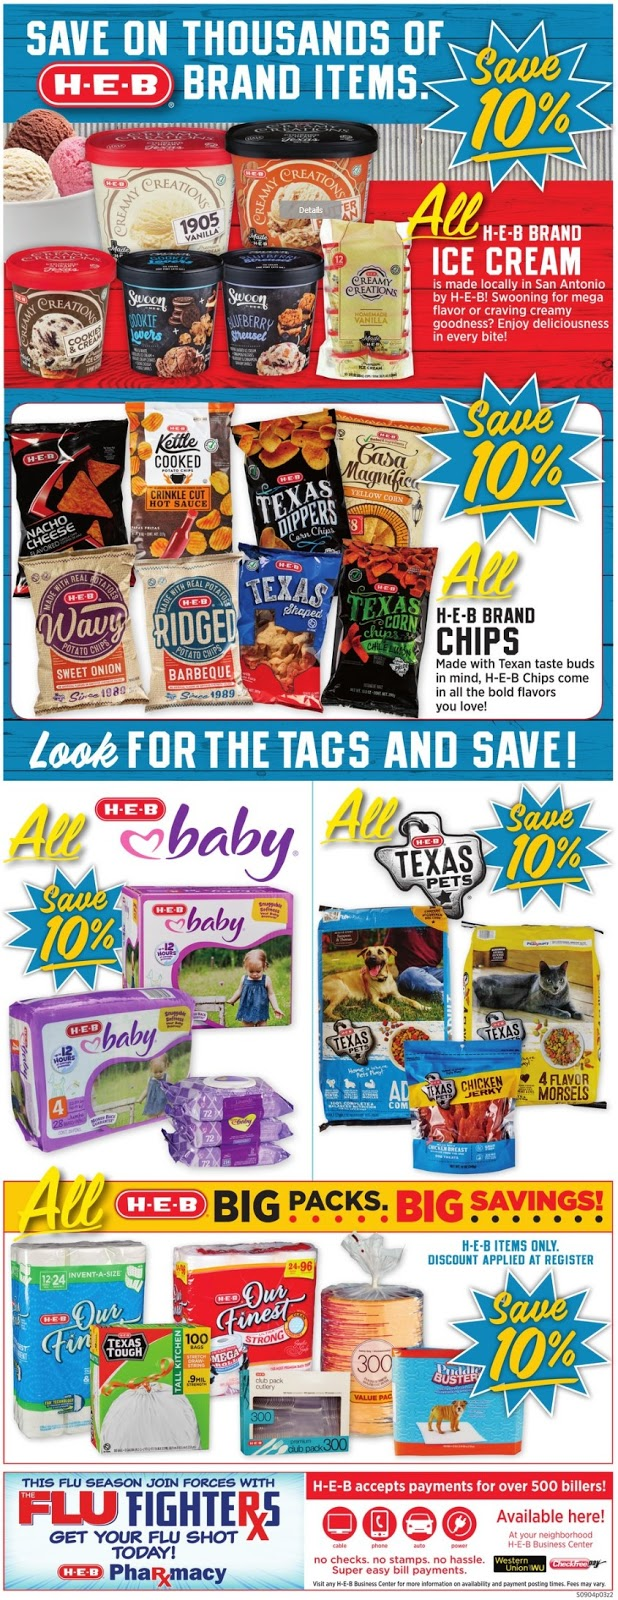 HEB Weekly Ad Scan September 11 - 17, 2019